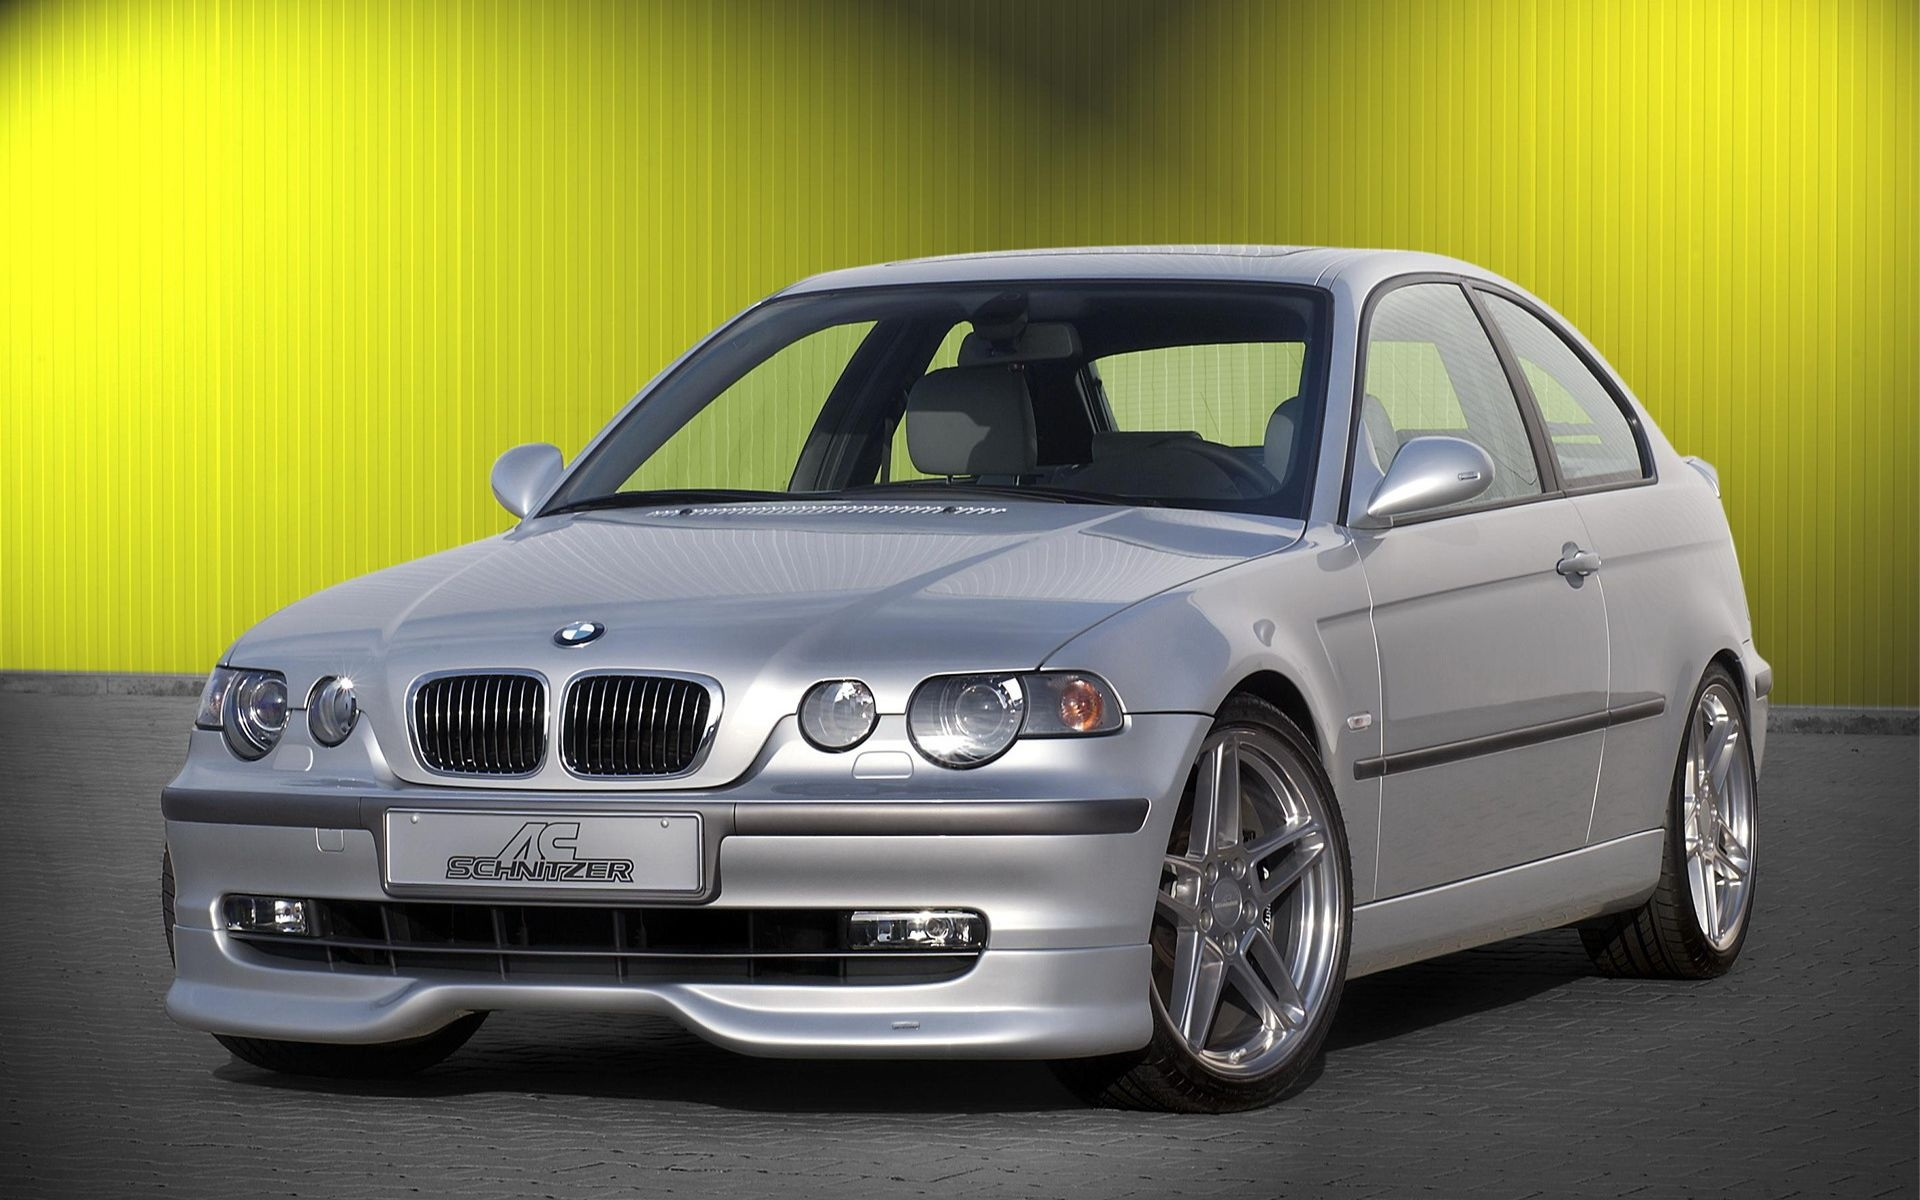 Bmw e46 ac schnitzer full hd wallpaper and background image vehicles bmw e46 ac schnitzer wallpaper voltagebd Gallery